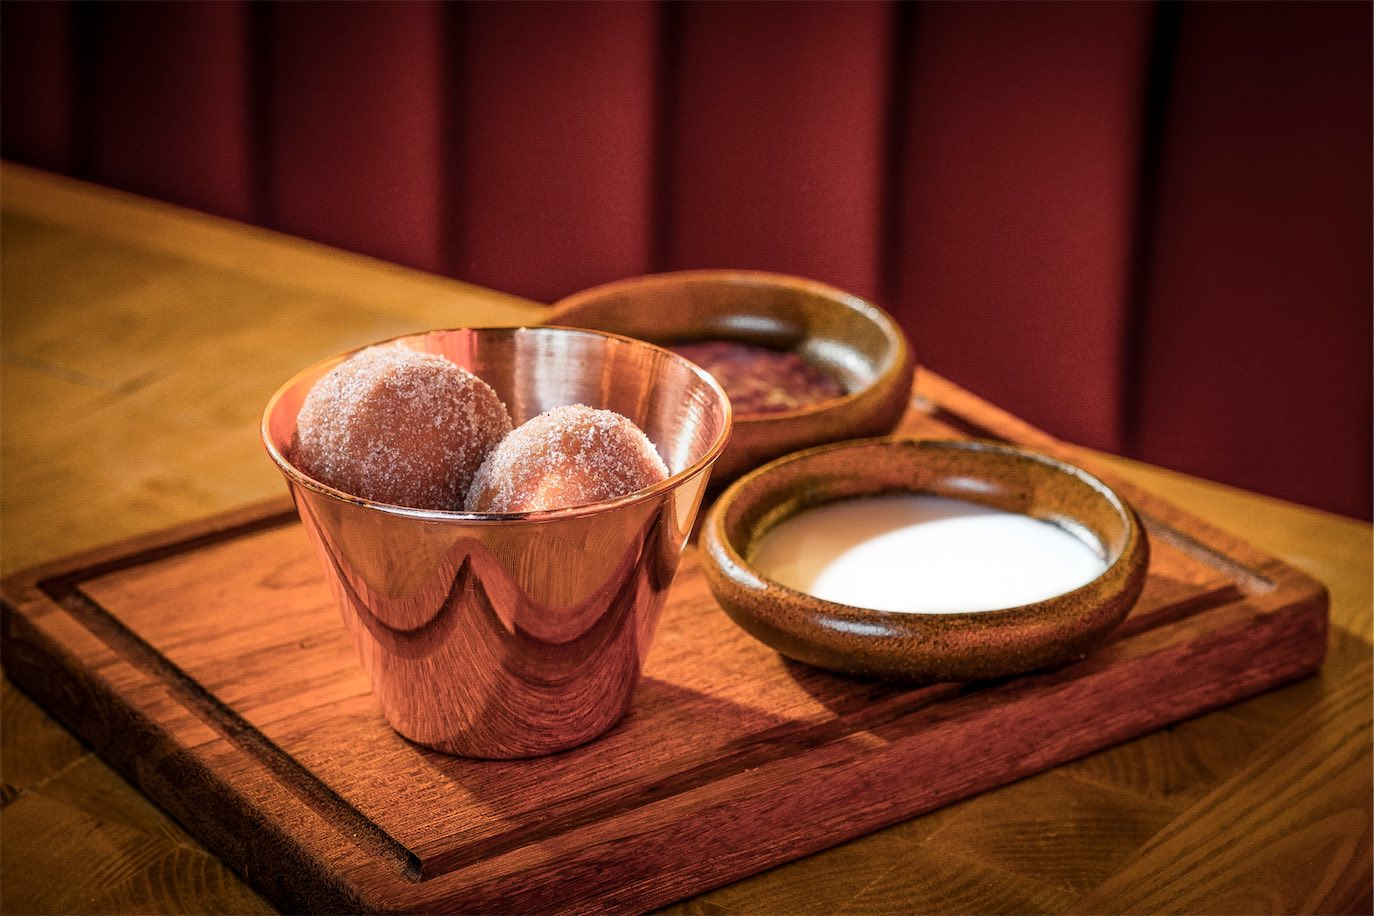 Rasberry donuts at the Fat Pig by Tom Aikens